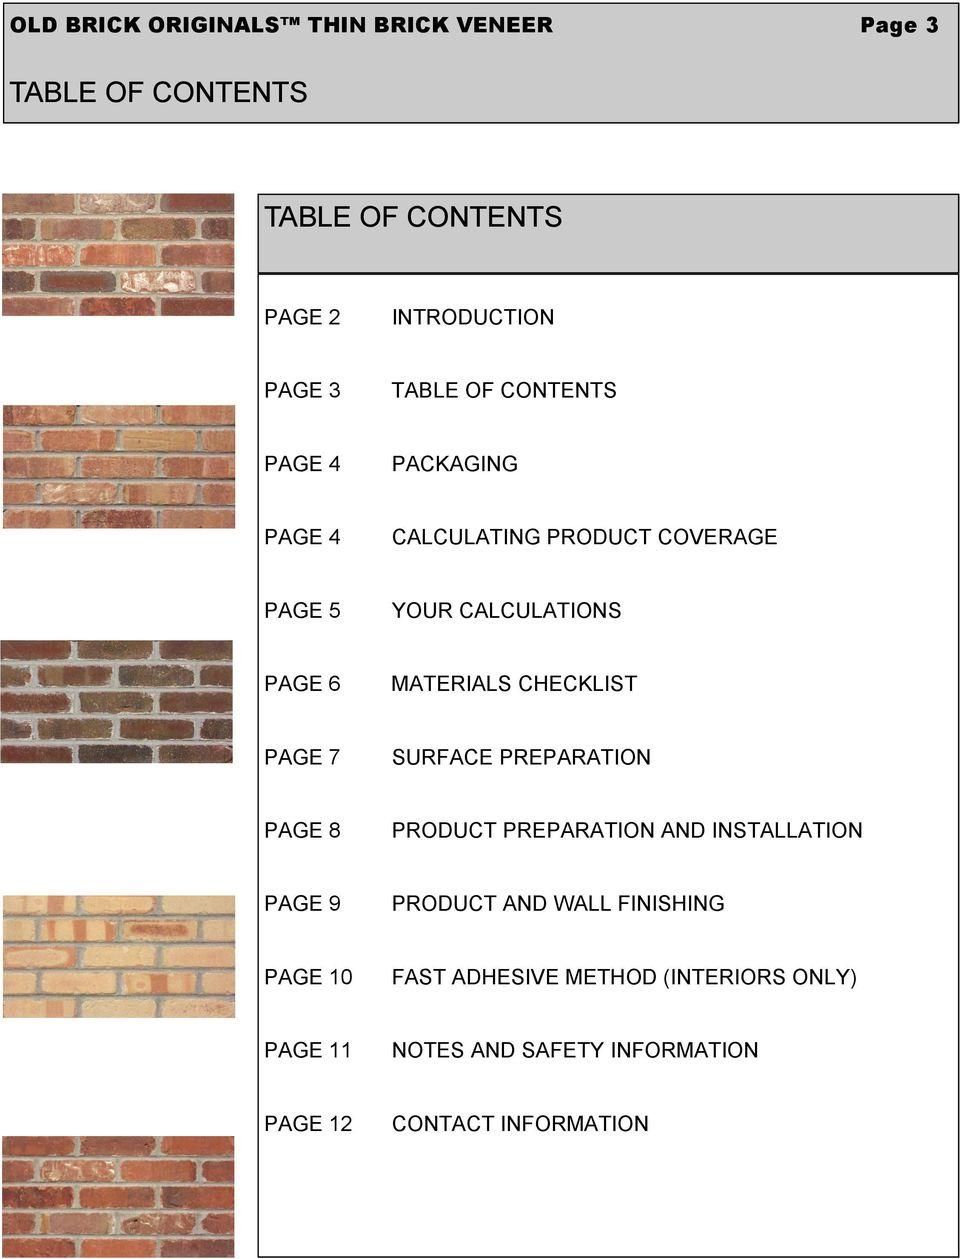 MATERIALS CHECKLIST PAGE 7 SURFACE PREPARATION PAGE 8 PRODUCT PREPARATION AND INSTALLATION PAGE 9 PRODUCT AND